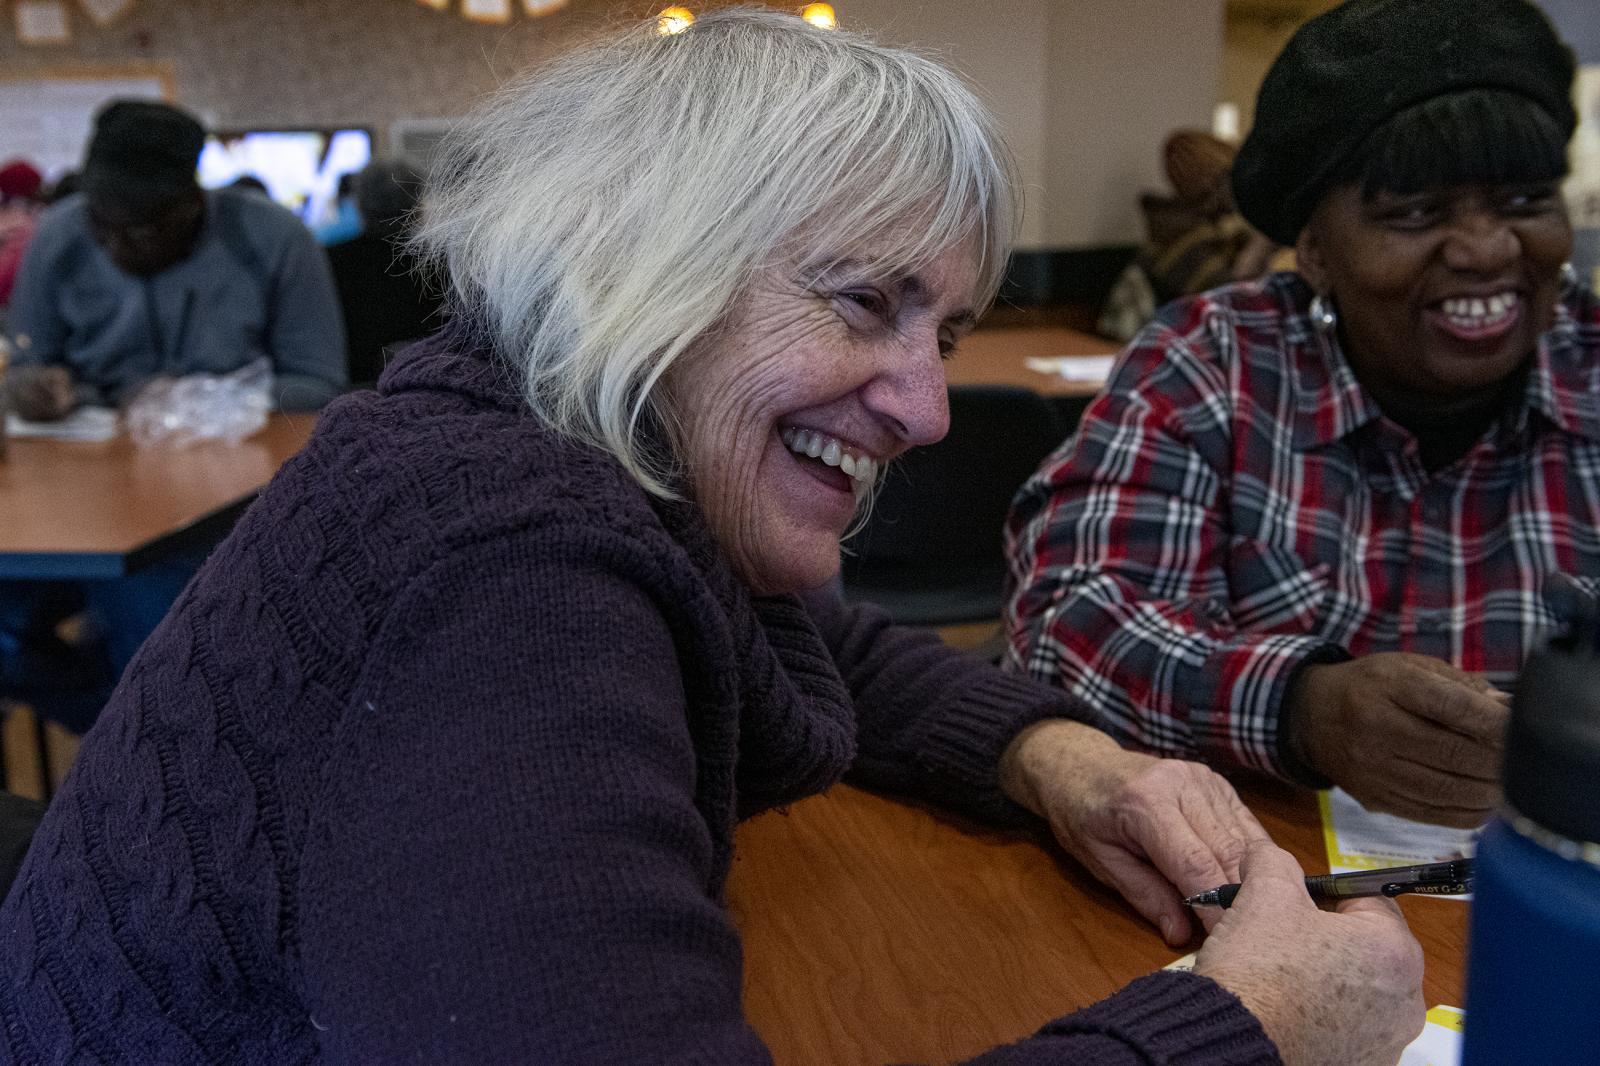 Sharon Browning laughs while sharing stories with other seniors at the 10th anniversary of Best Day of My Life So Far on Friday, Nov. 8, 2019, at Philadelphia Senior Center, in Philadelphia, Pa.